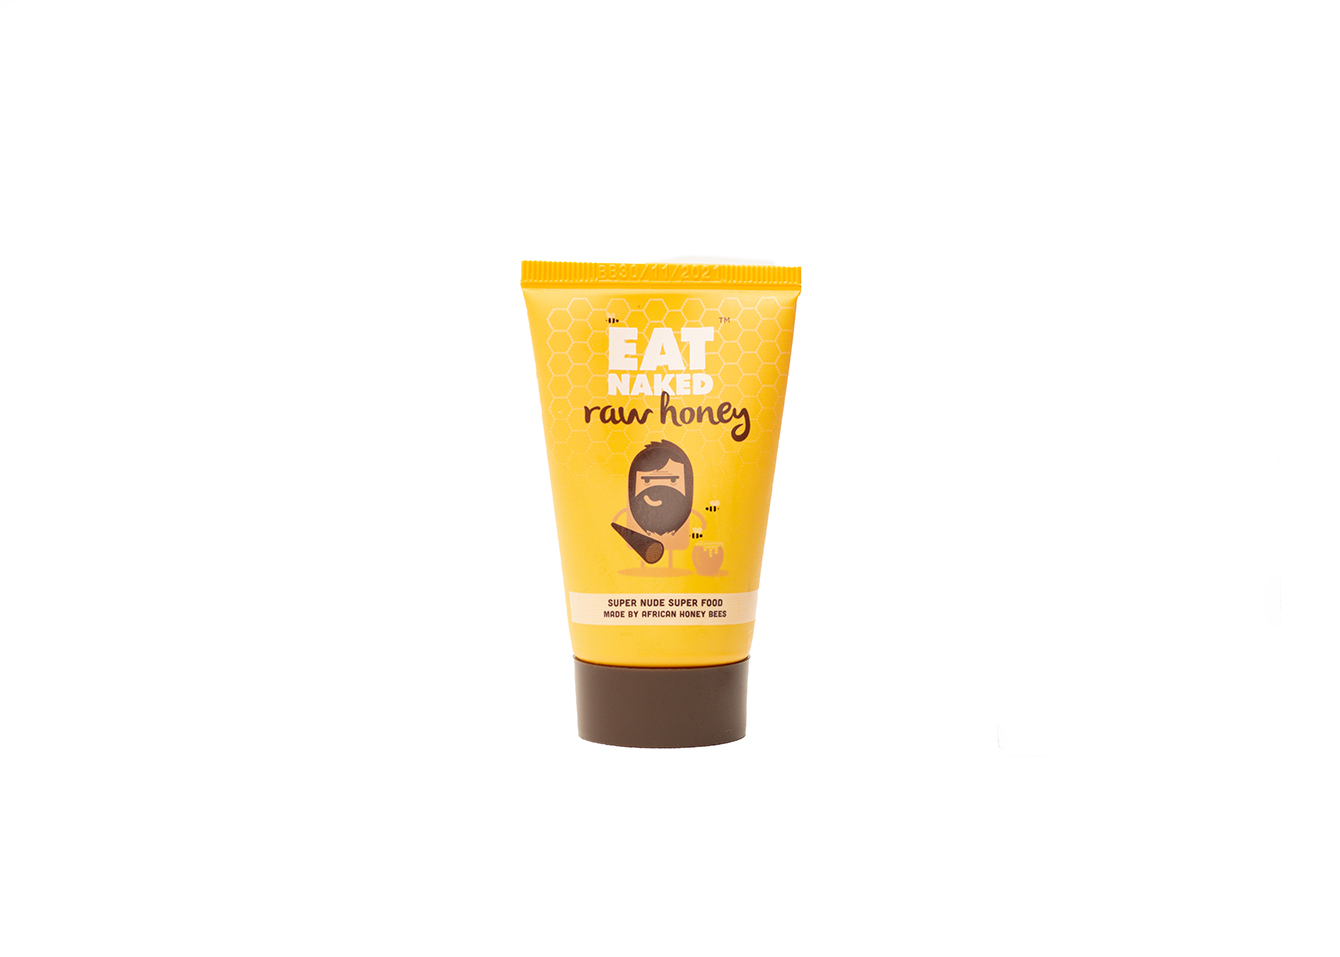 8. Raw honey tube 50g - available sizes and nutritional information